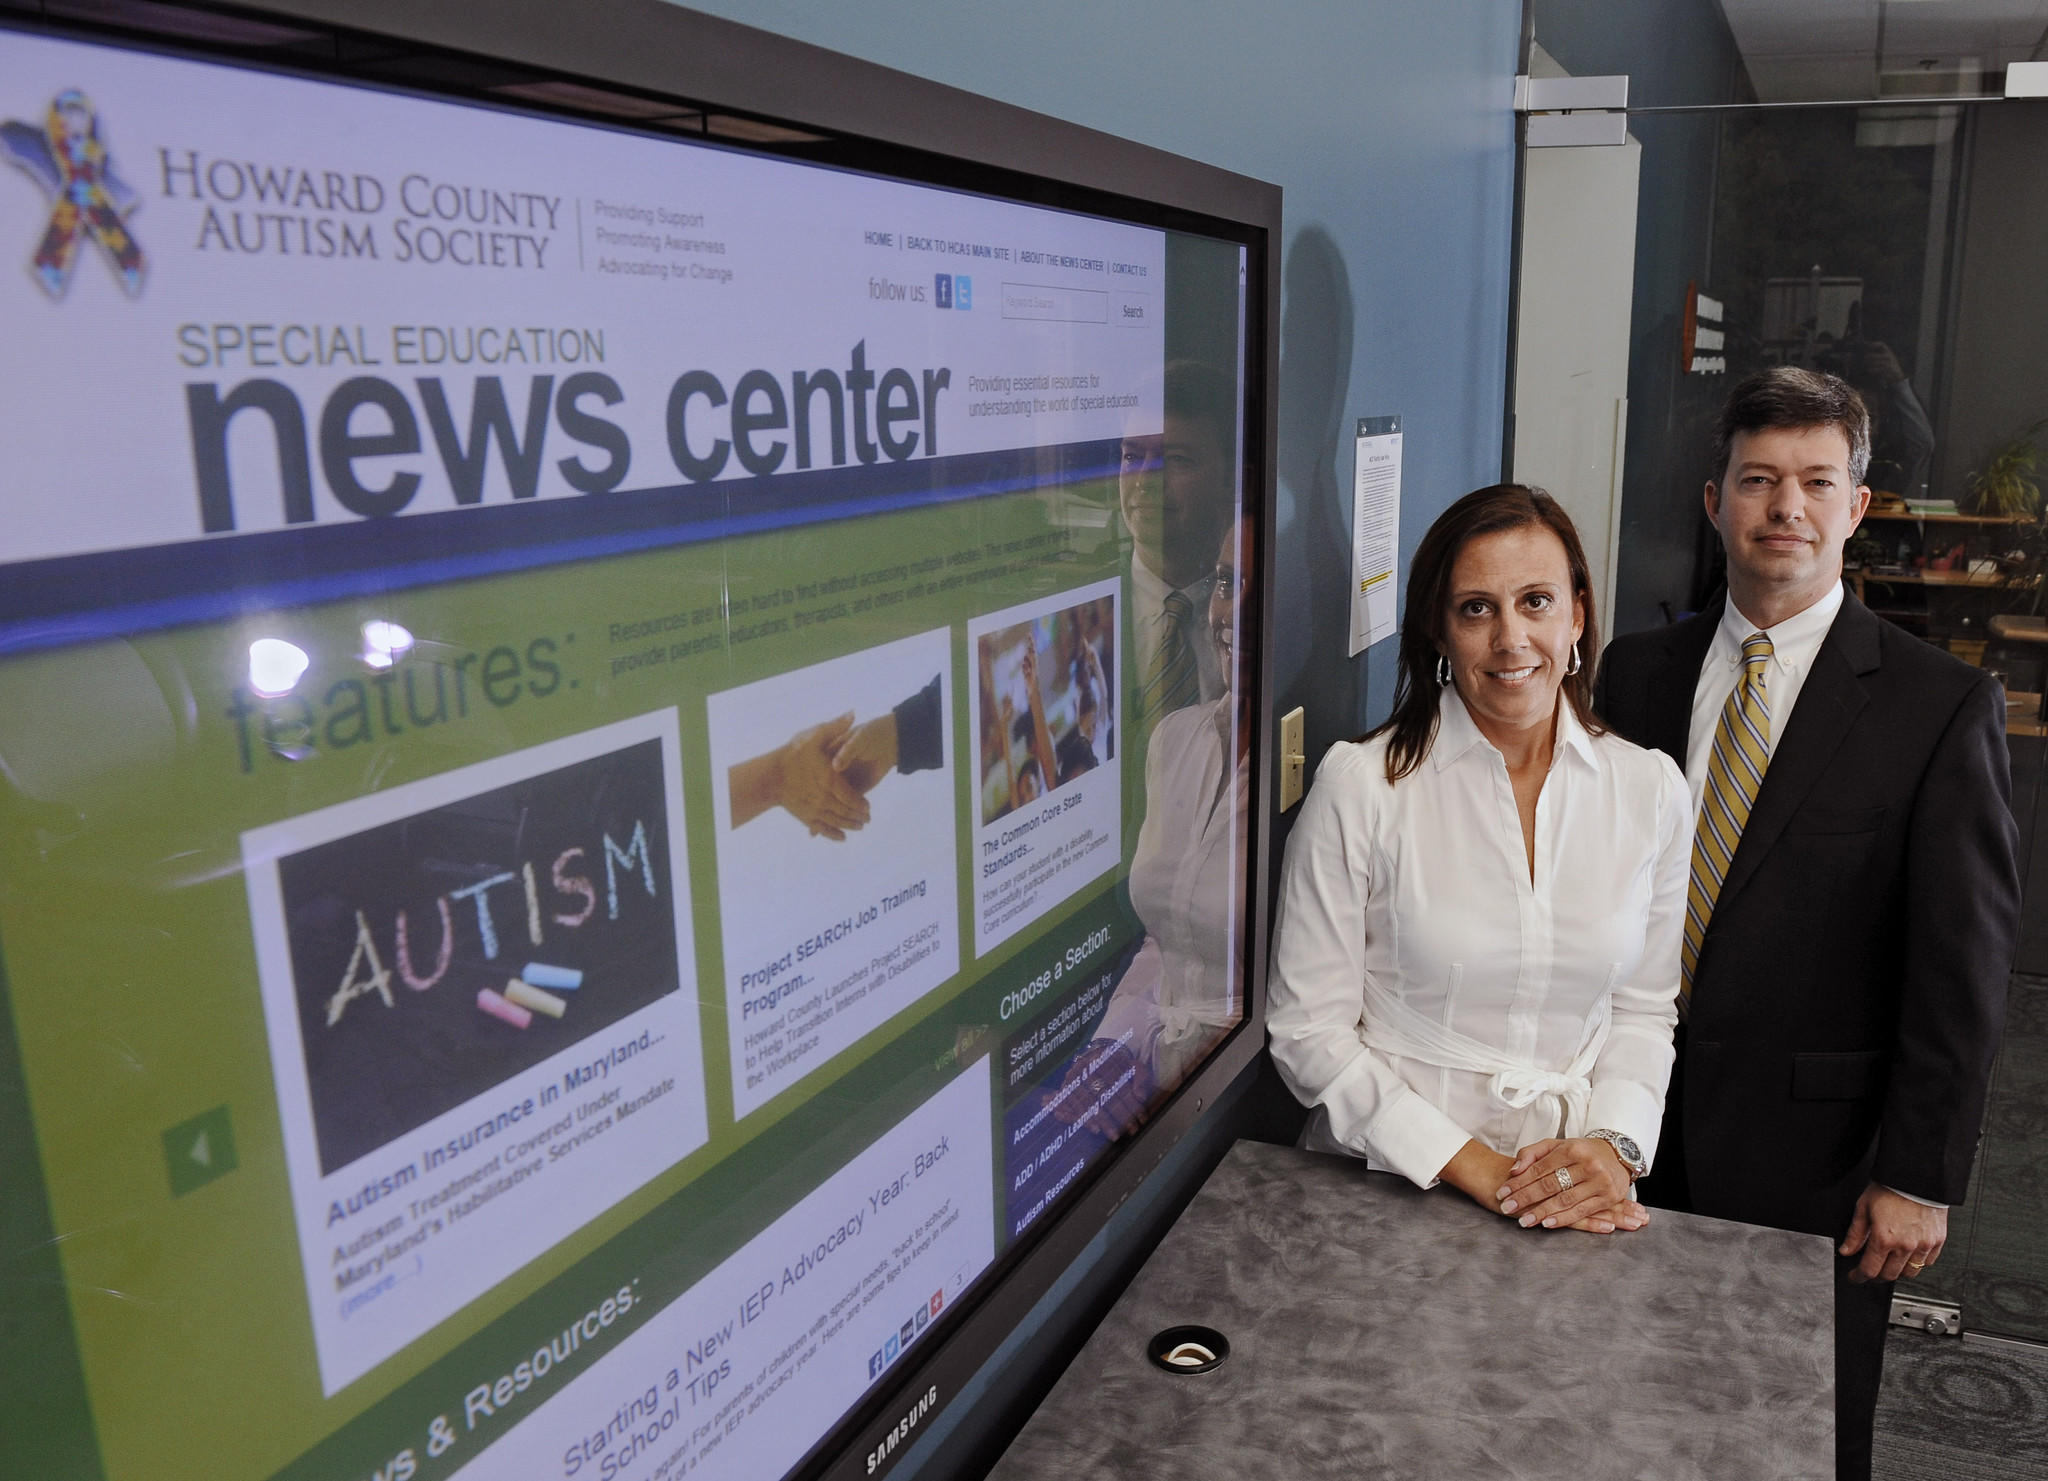 Columbia, Md.--9/25/14-- Kirk Couser, right, CEO of NextLOGIK, and Elizabeth Benevides, left, Associate Director Autism Programs at Hussman Foundation, combined to create a new website devoted to help parents of autistic children find resources and help. Both Couser and Benevides were on the board of the Howard County Autism Society when they started the project.